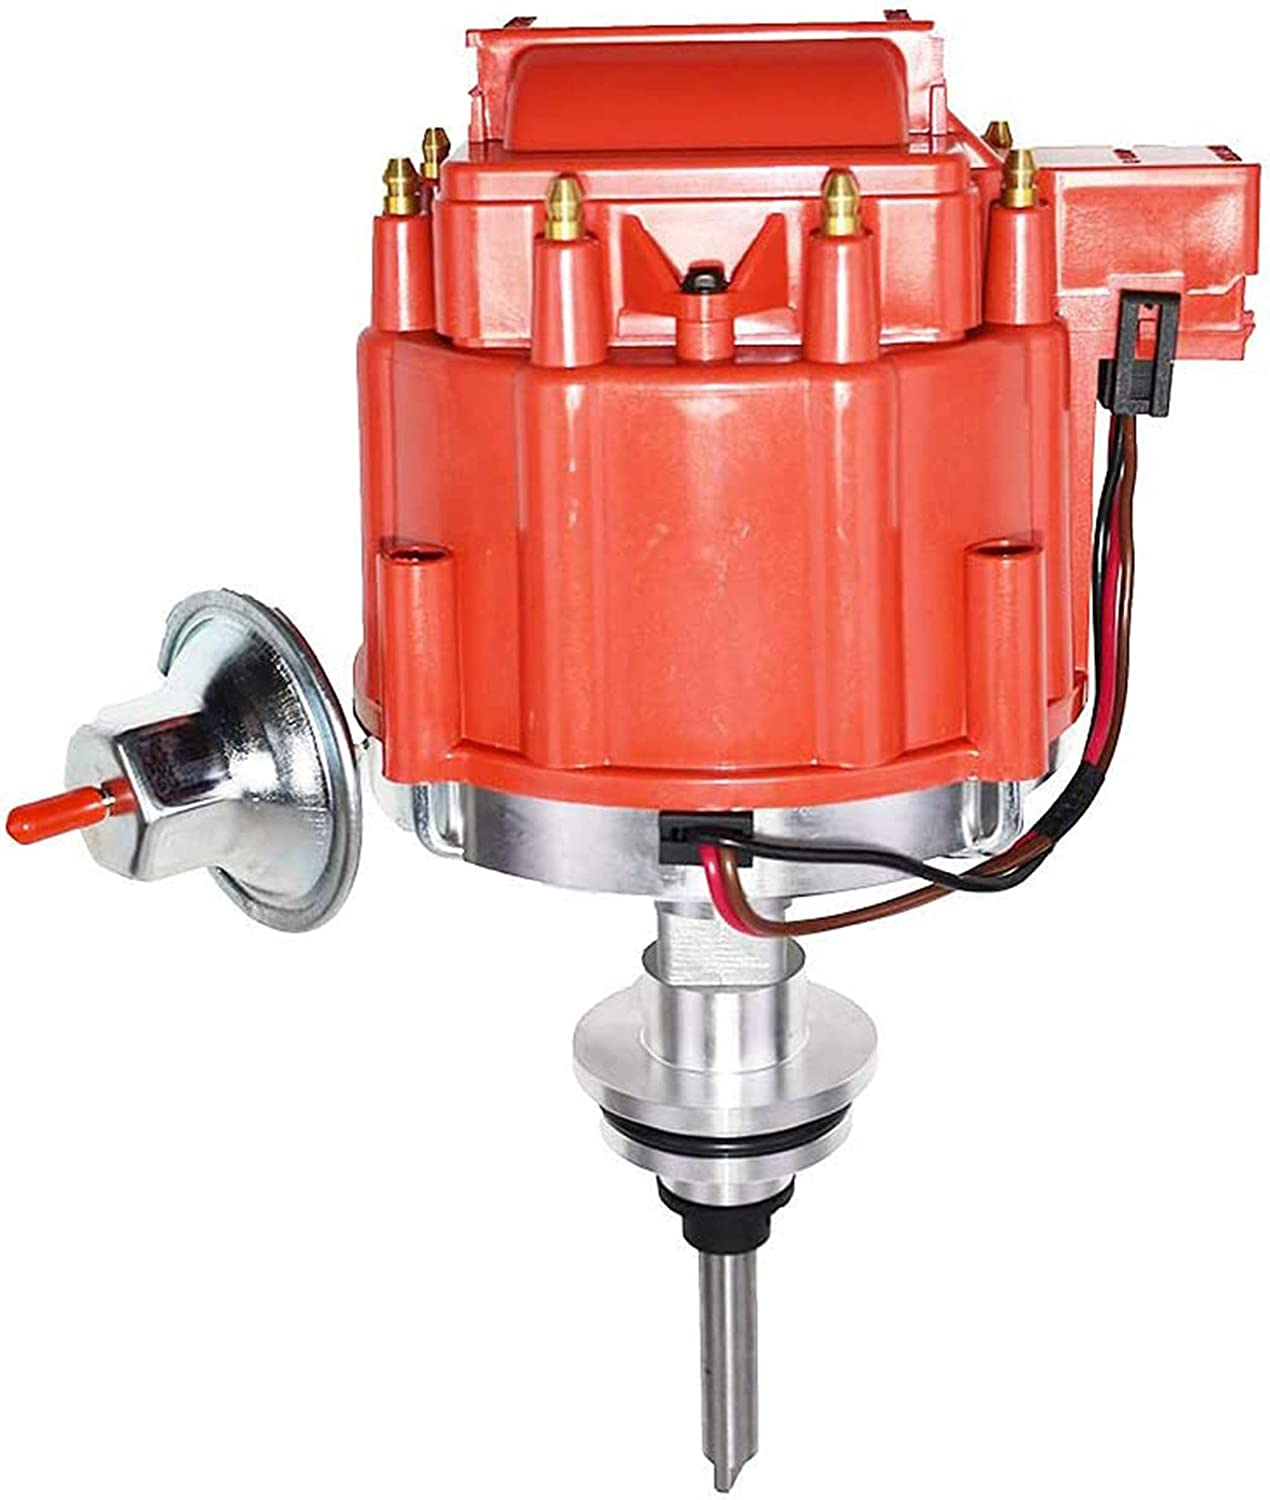 A-Team Performance Complete HEI Distributor 65K Coil Compatible with Mopar Chrysler Dodge Plymouth V8 Engines 273 318 340 360 One-Wire Installation Red Cap